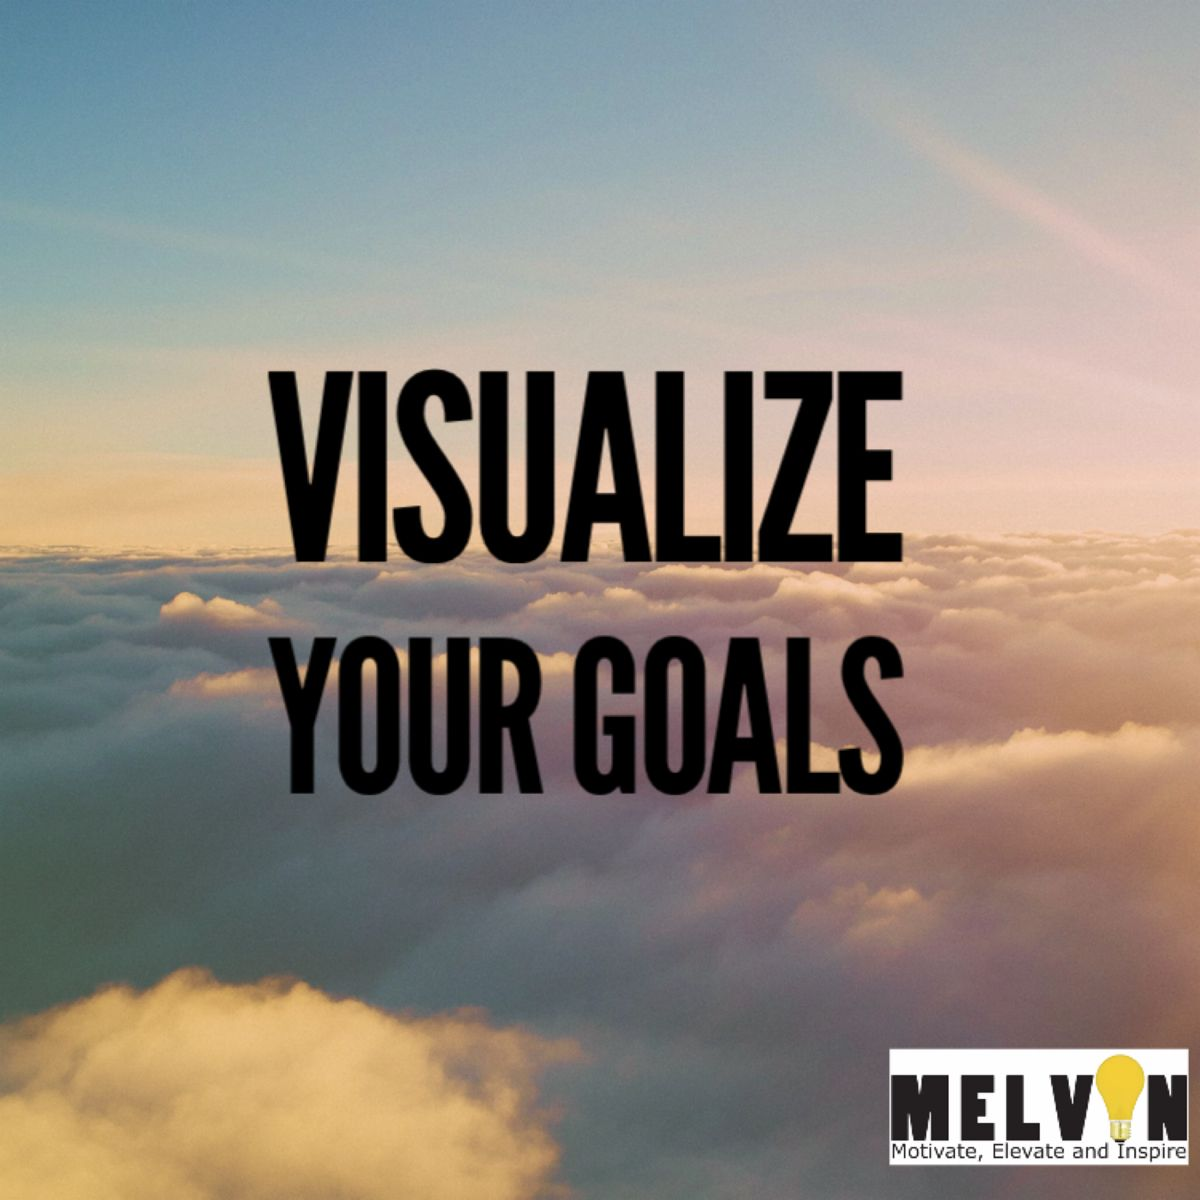 Visualize Your Goals In